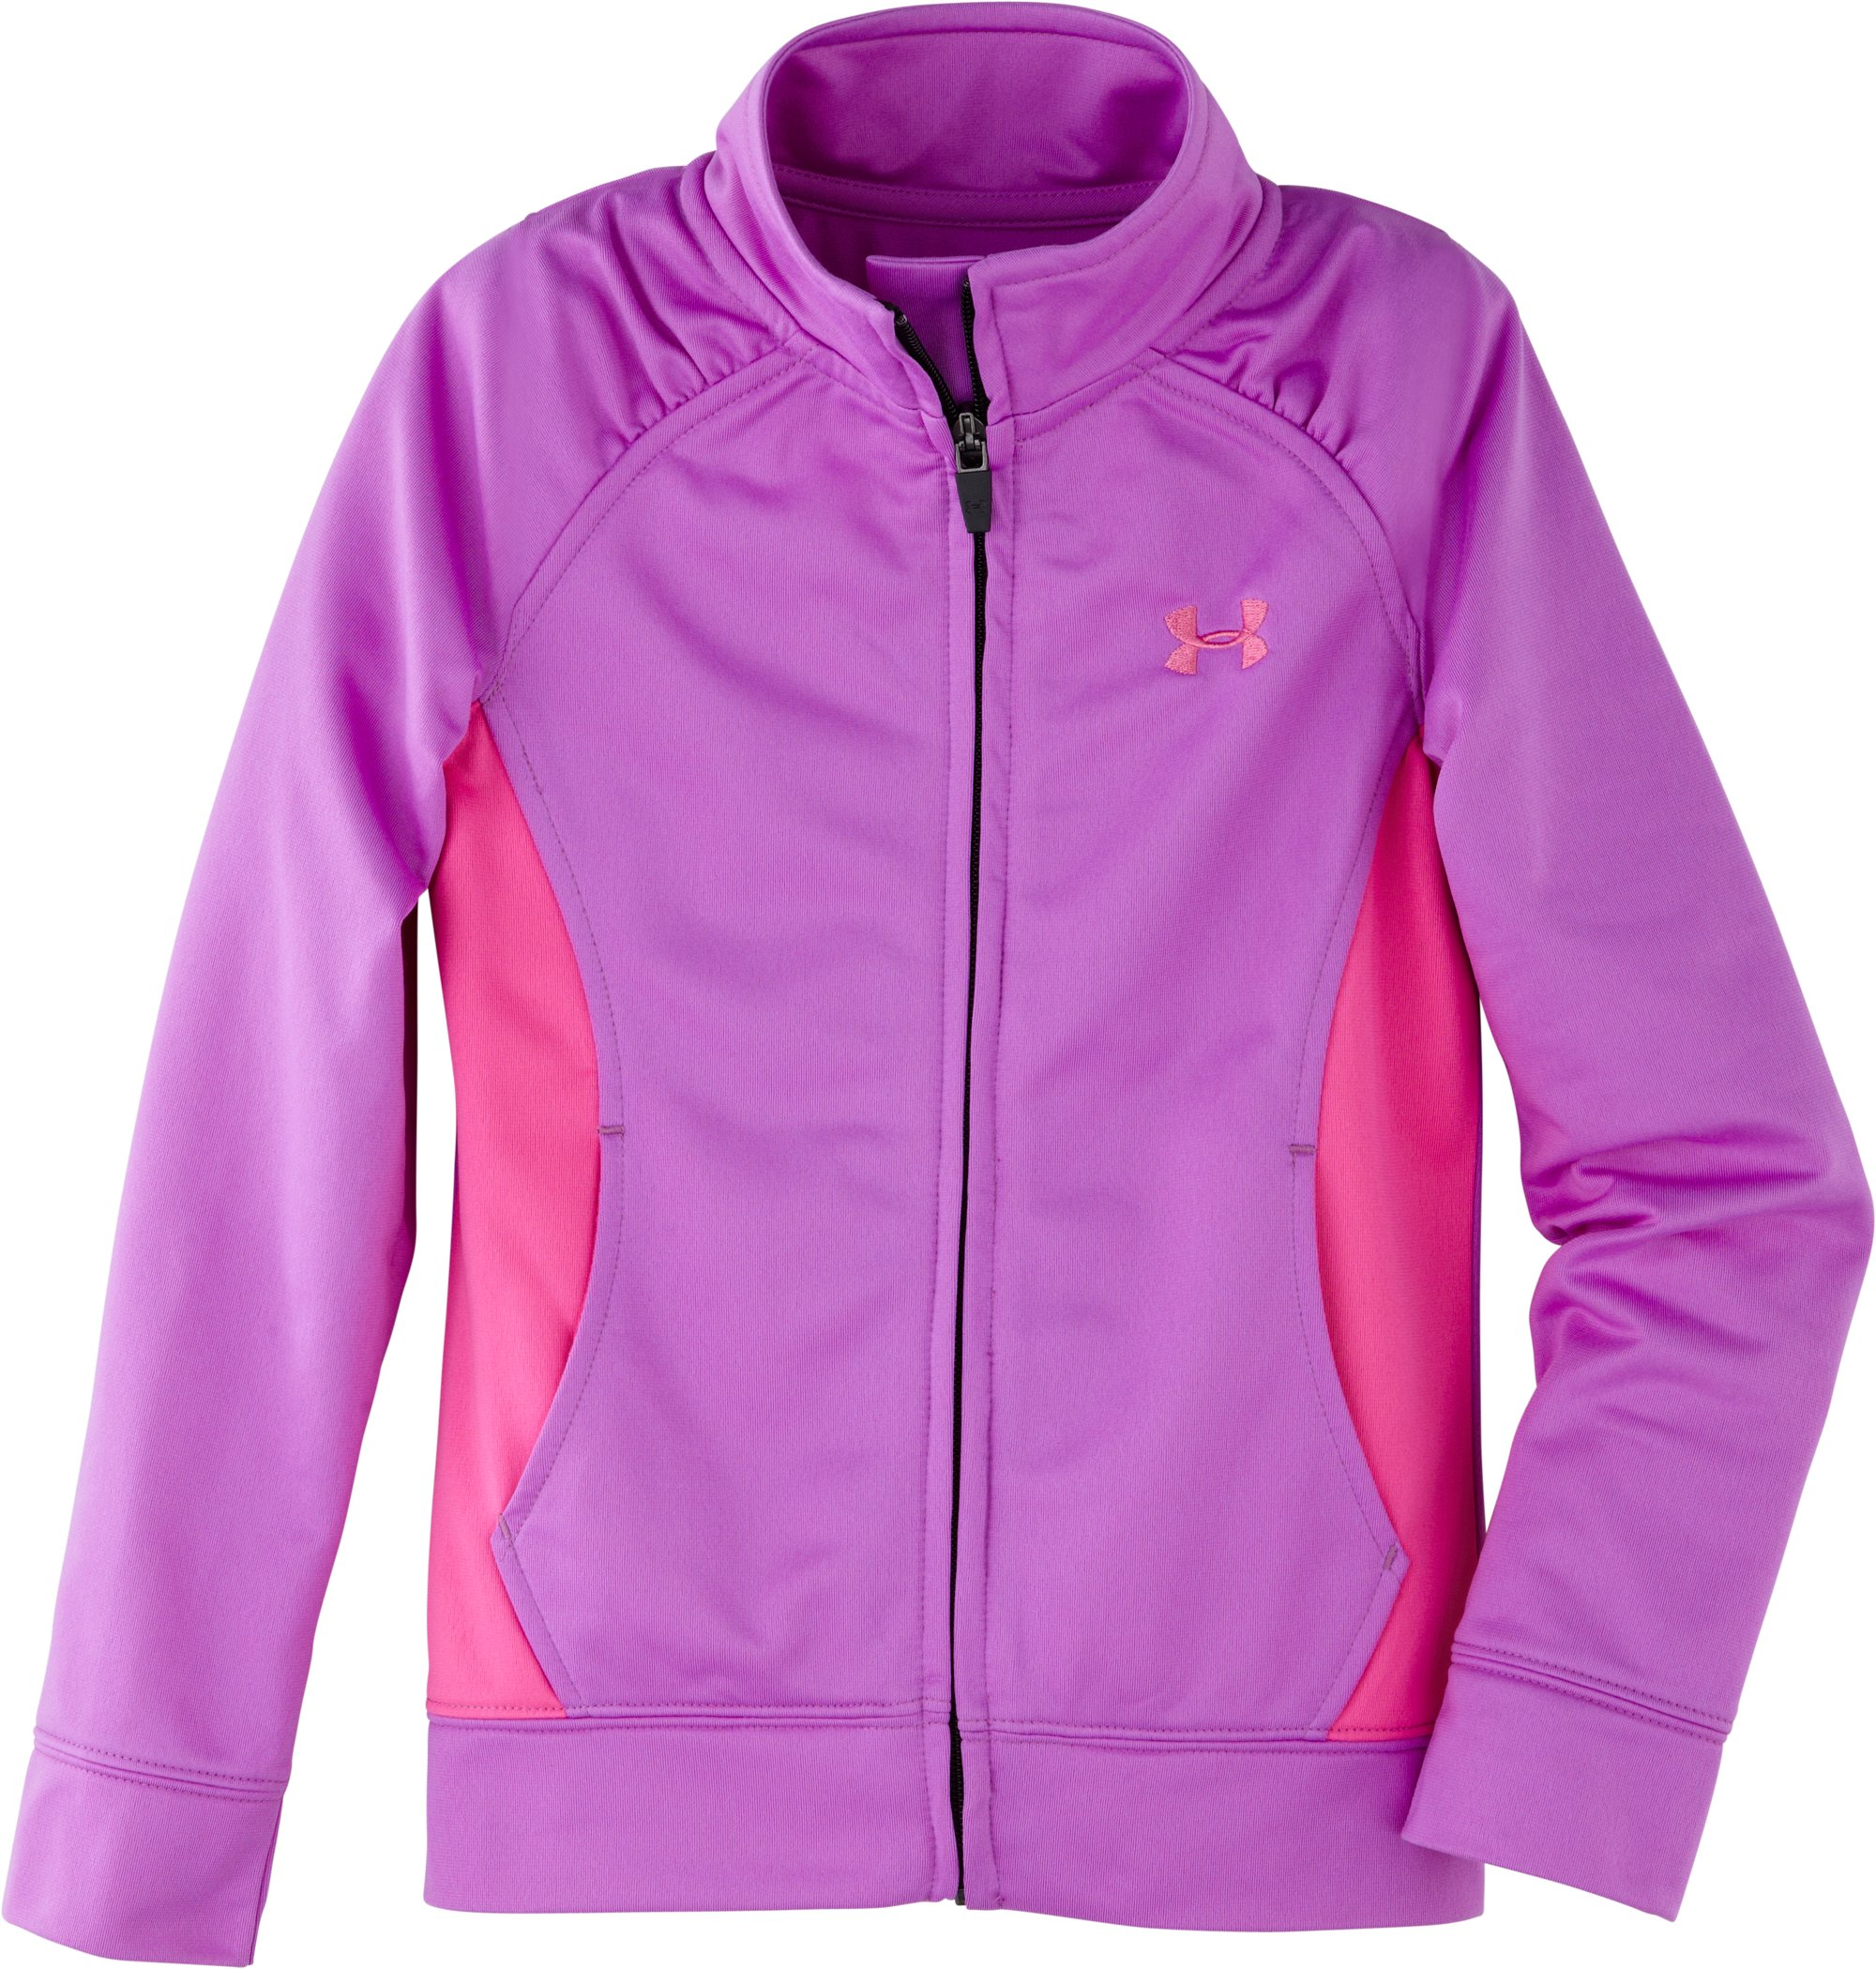 Girls' Pre-School UA Track Jacket, EXOTIC BLOOM, undefined